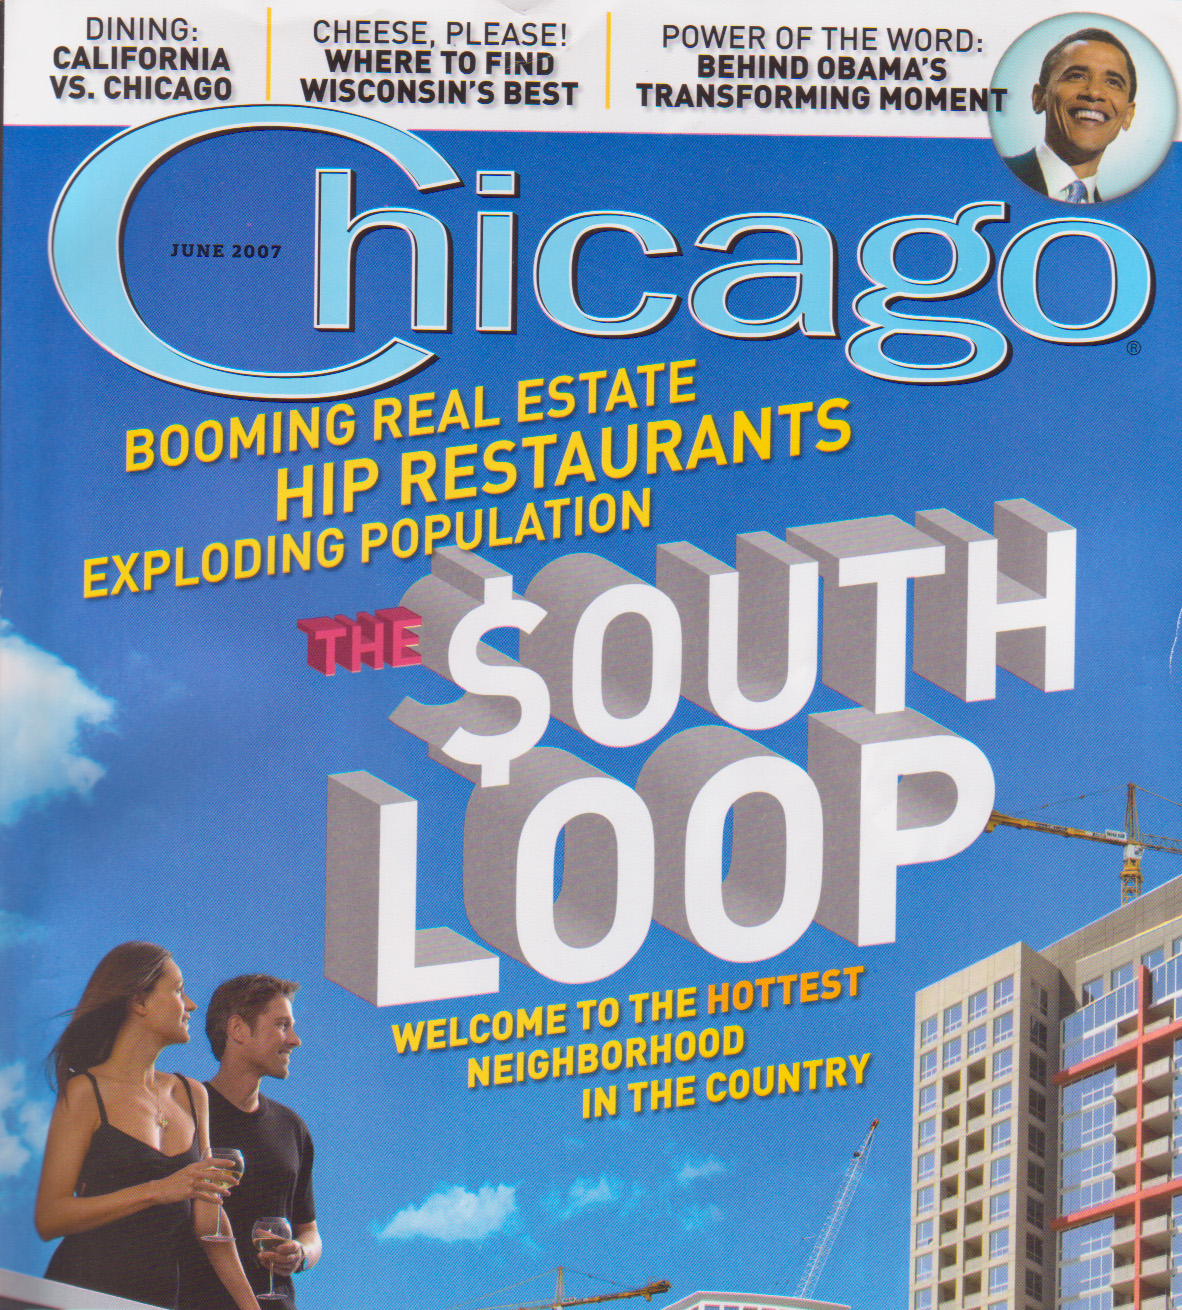 The South Loop, from the country's hottest neighborhood to Chicago's Las Vegas